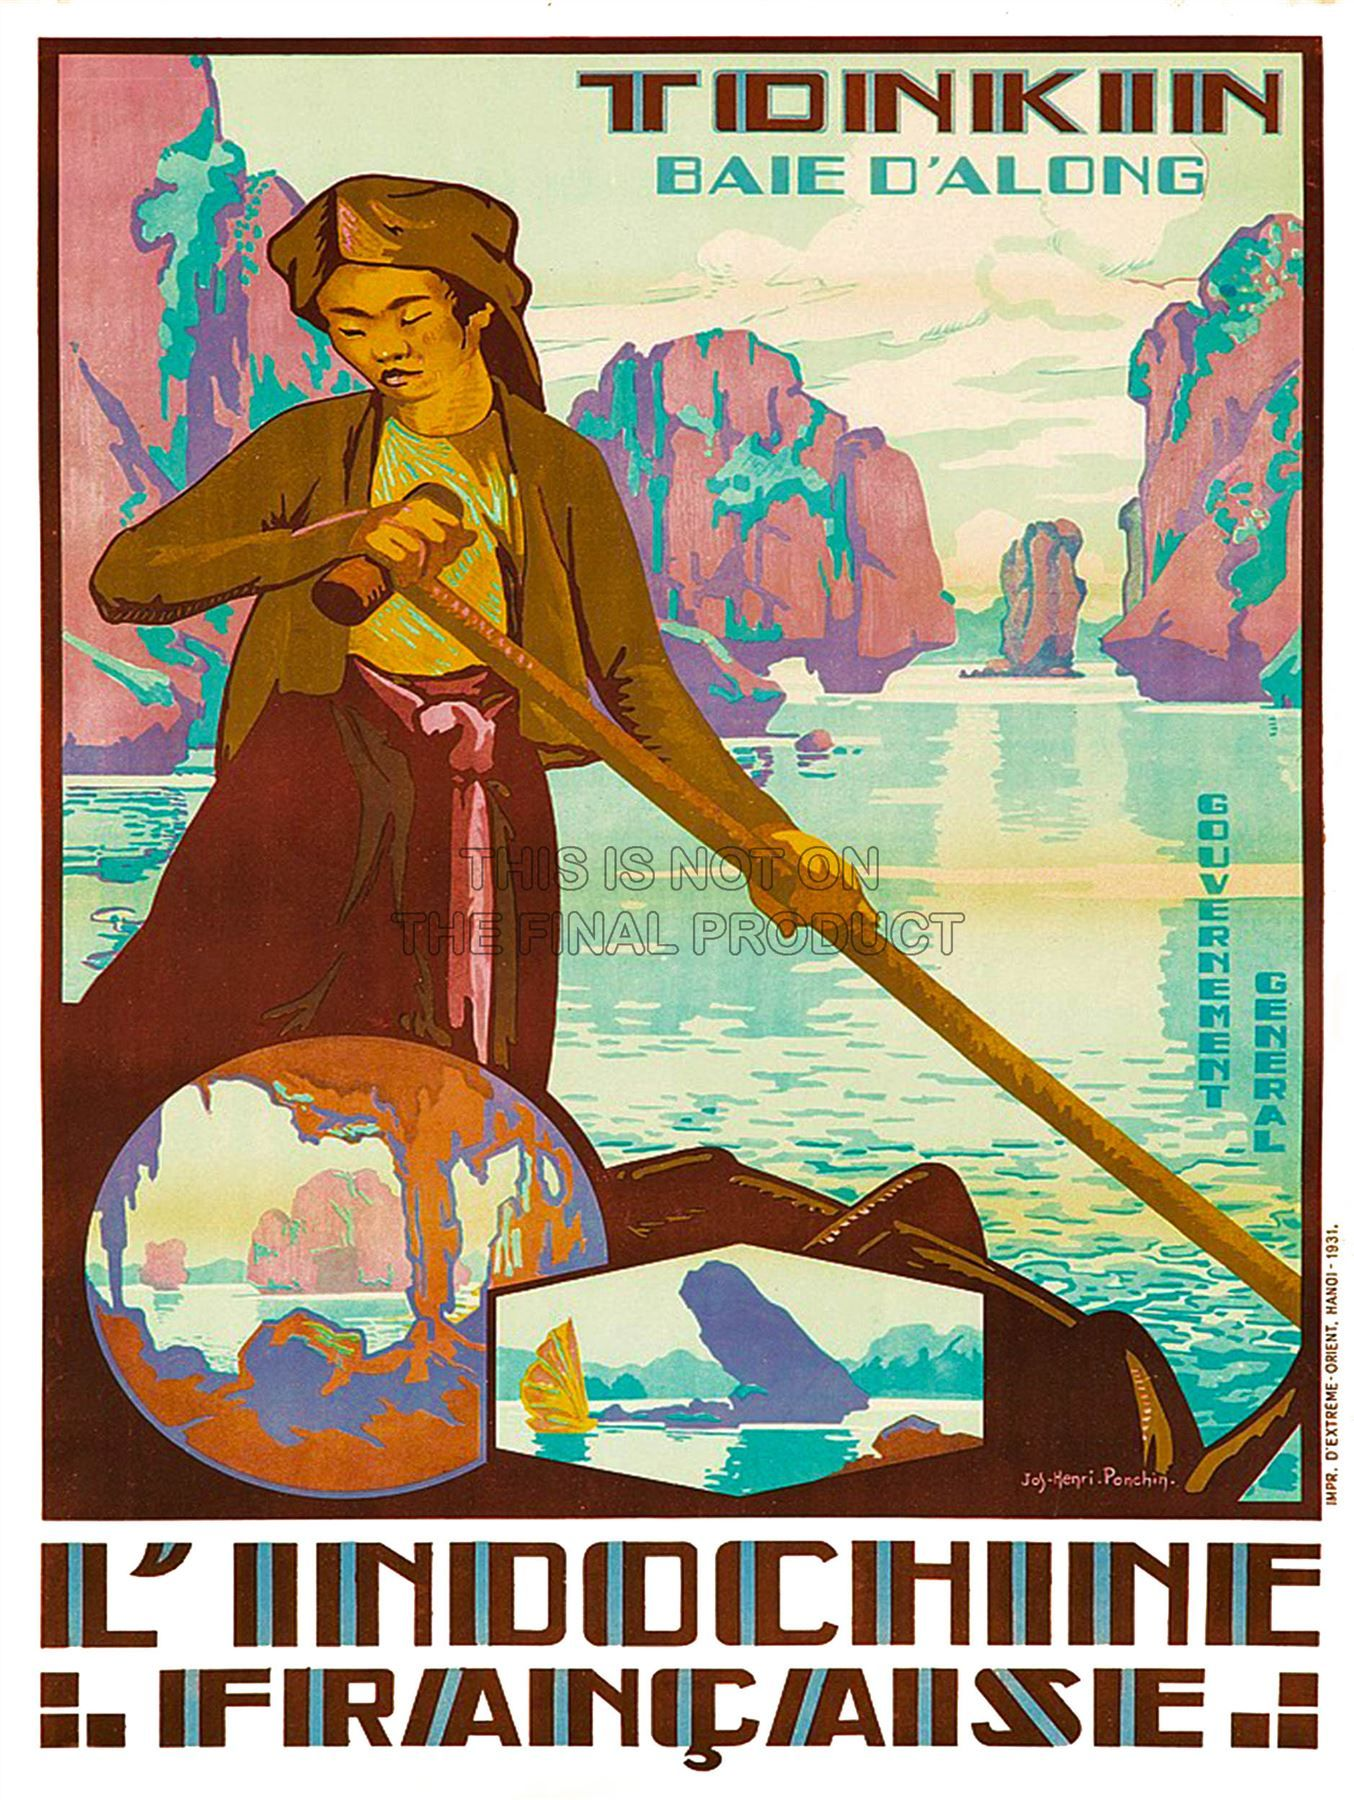 Travel Tonkin Vietnam Indochina River Boat France Art Print Poster Bb8466b Ideas For The House